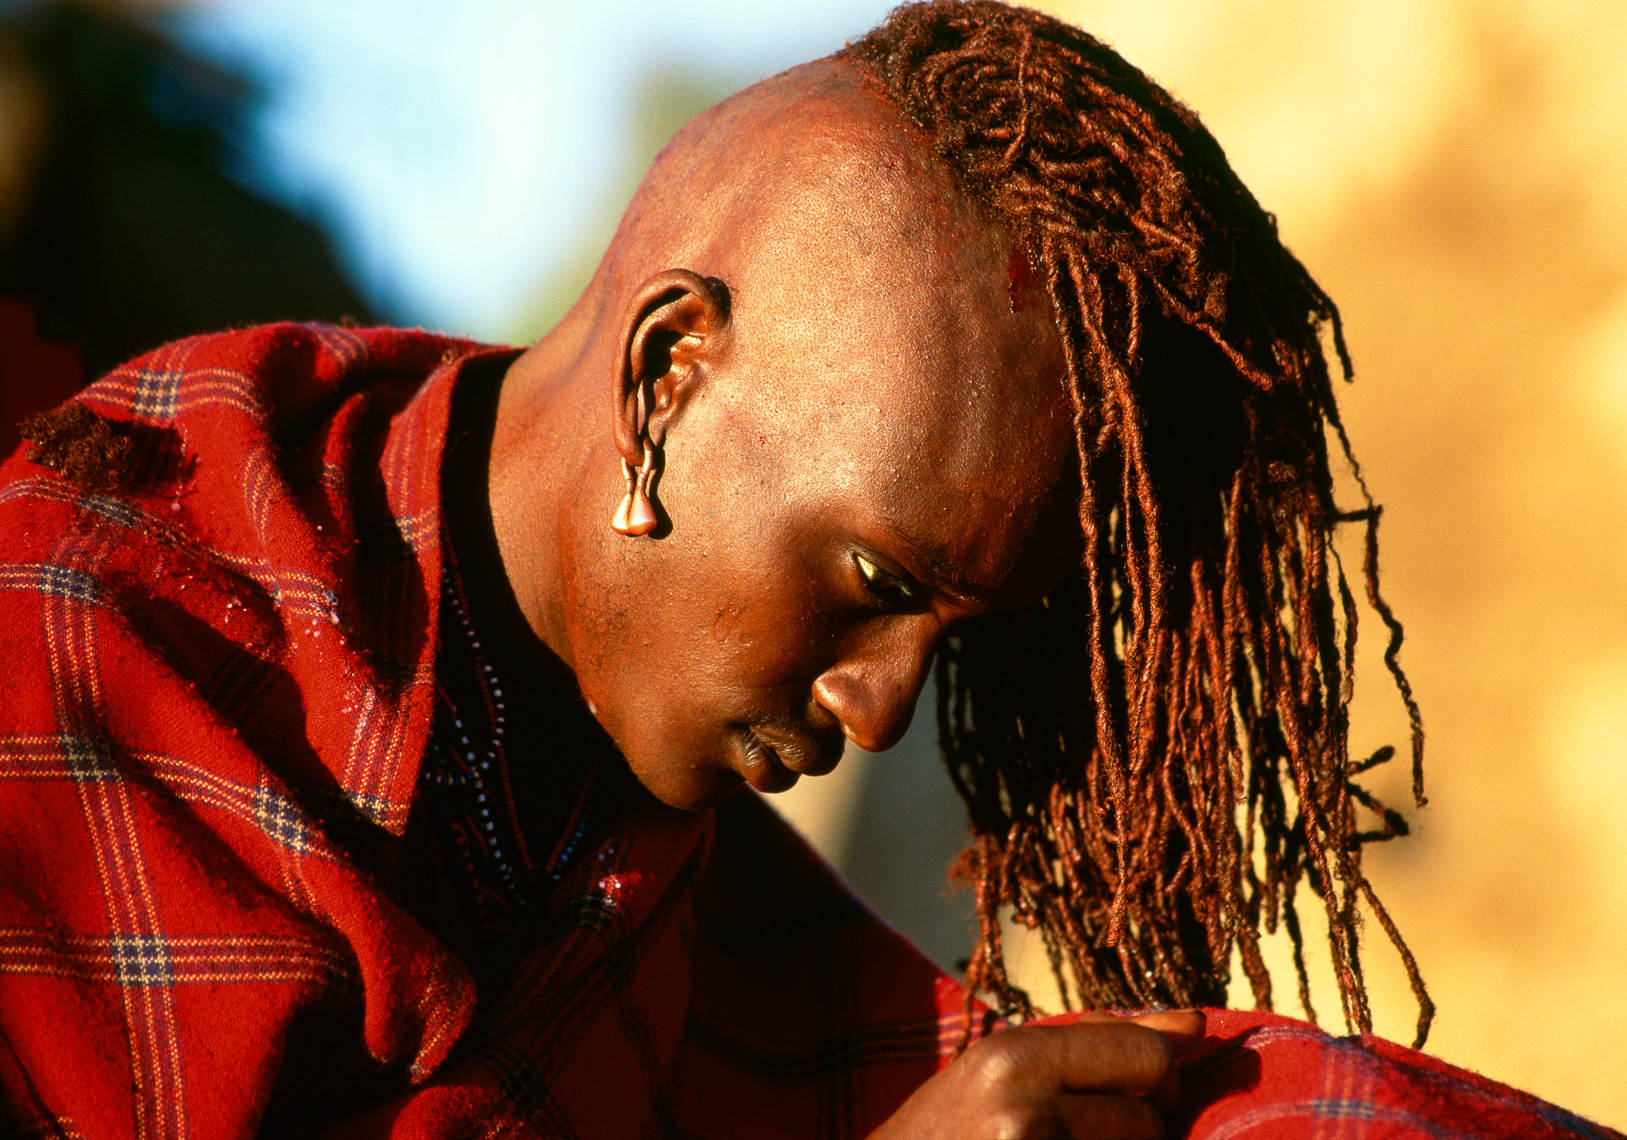 Head-Shaving of Maasai Warriors